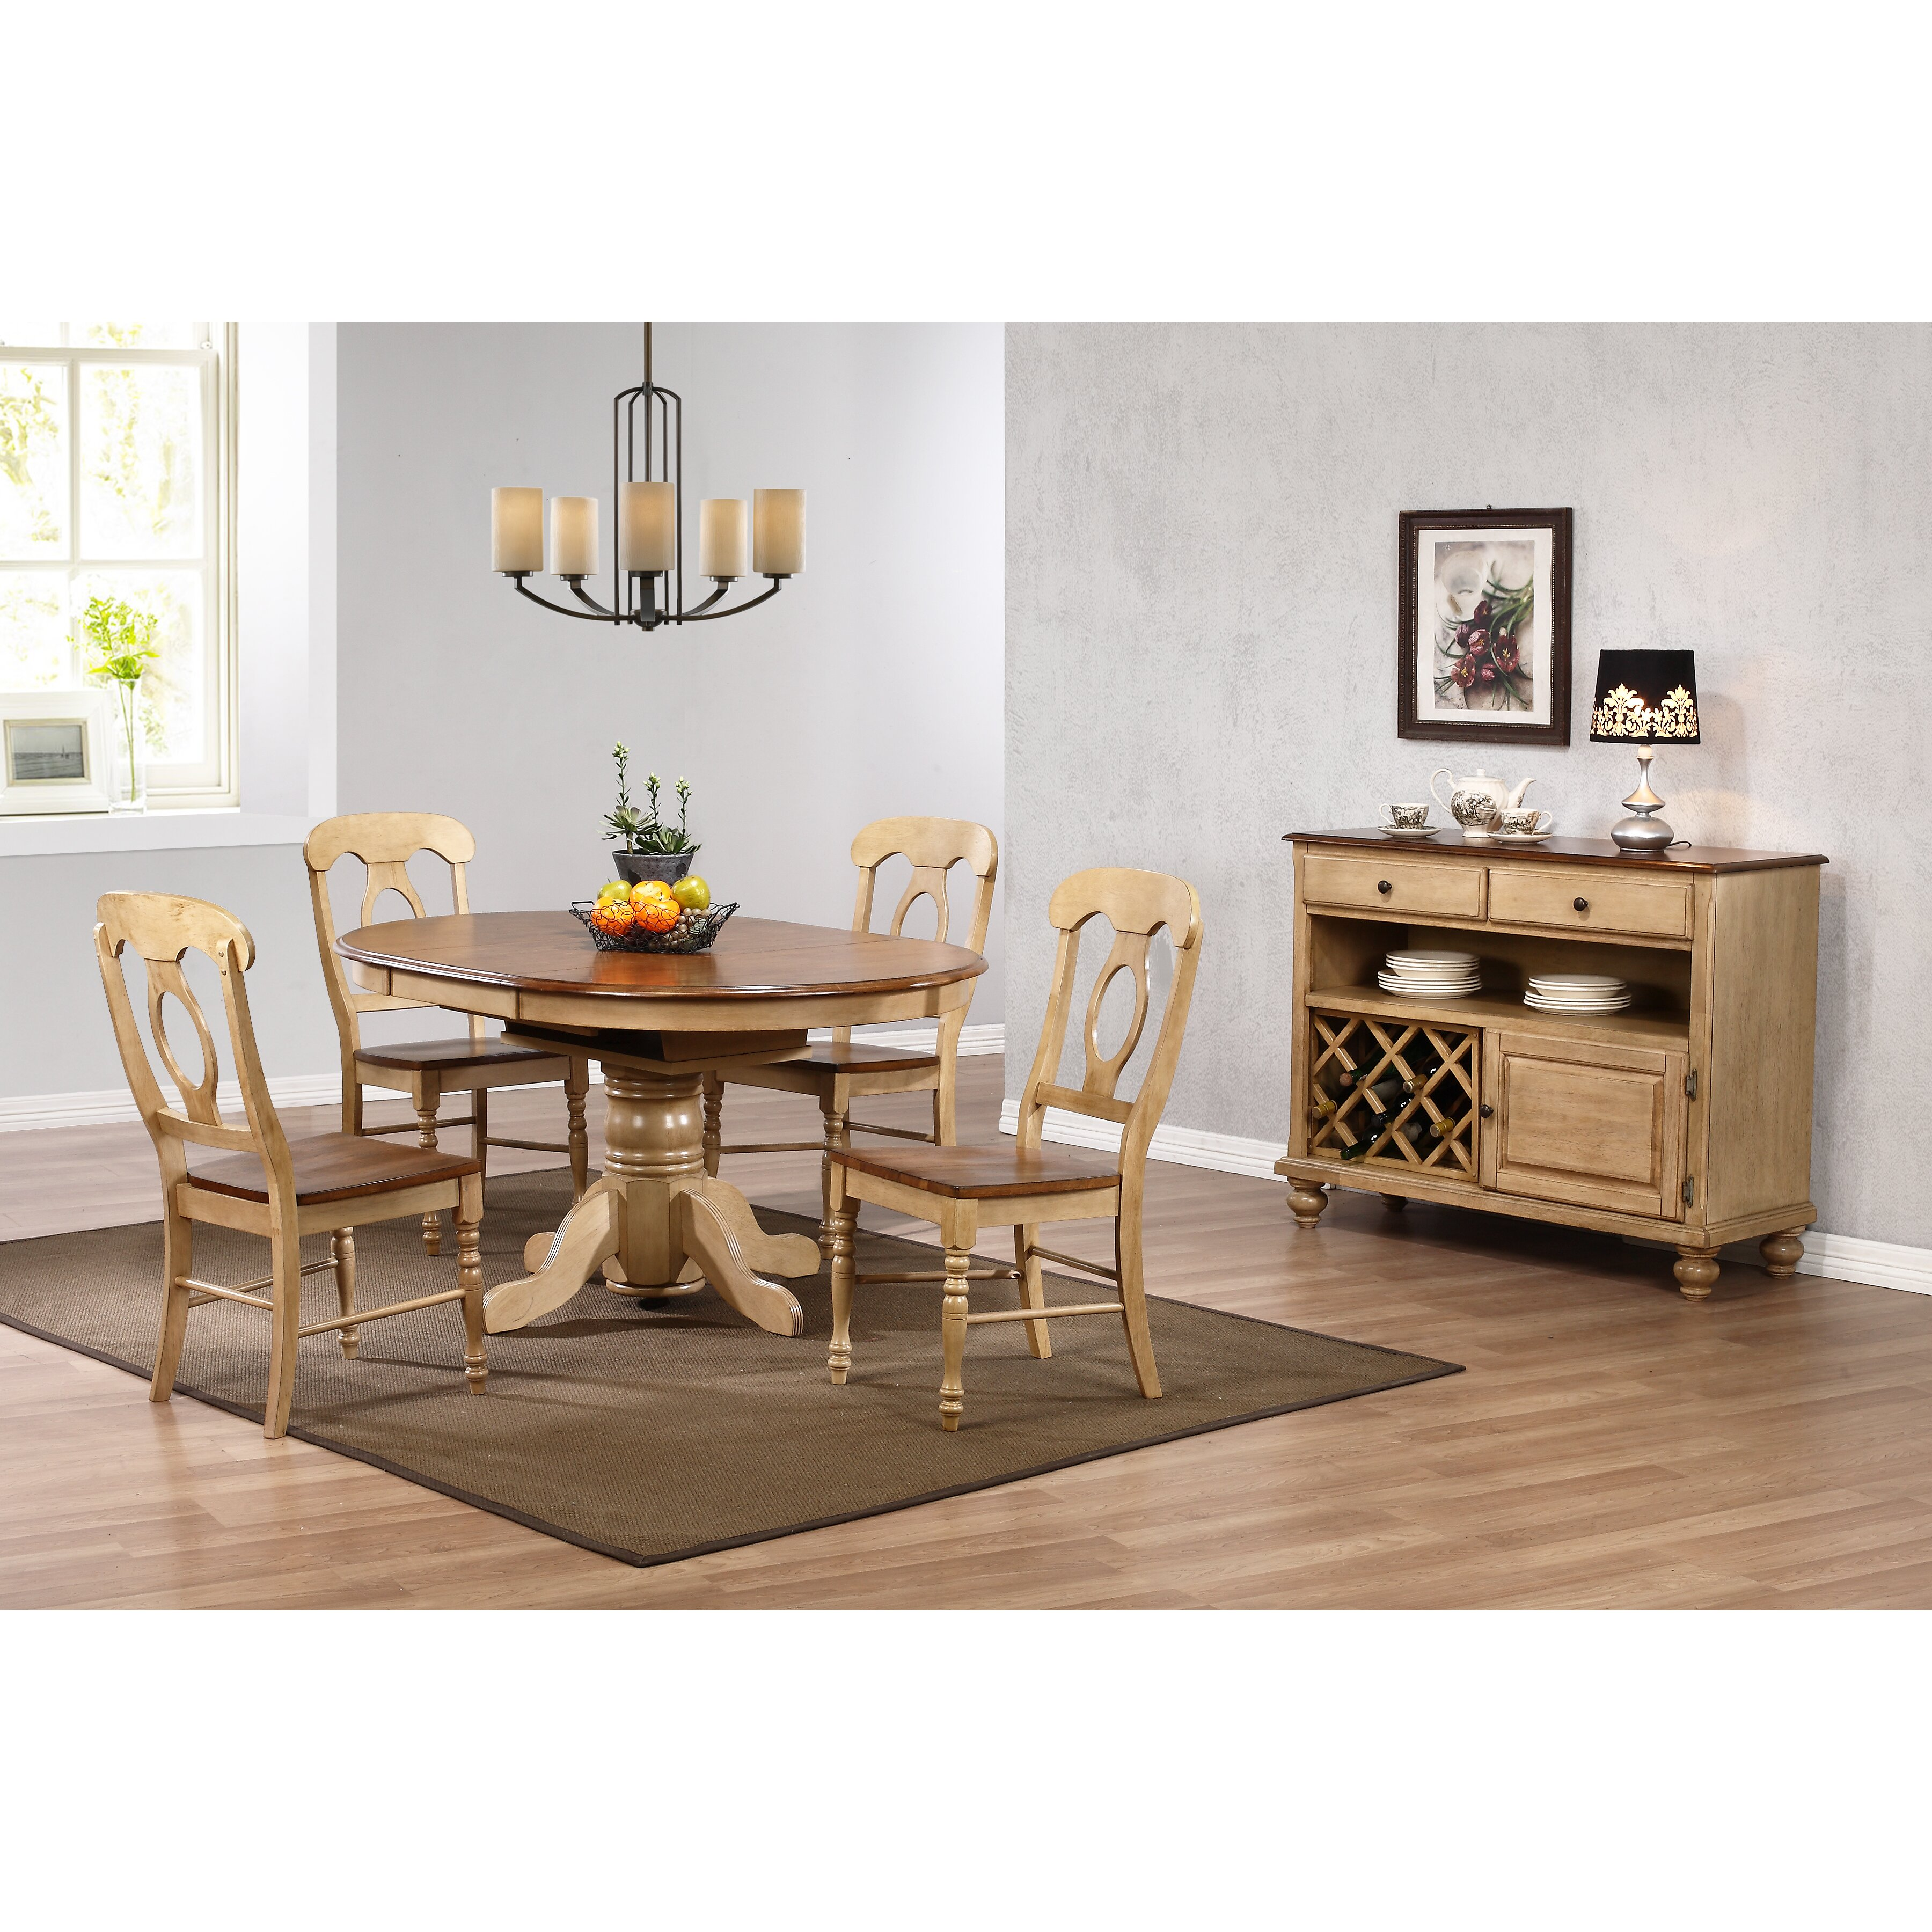 Loon Peak Agrihan Extendable Dining Table amp Reviews Wayfair : Loon Peak25C225AE Agrihan Extendable Dining Table from www.wayfair.com size 3600 x 3600 jpeg 2129kB